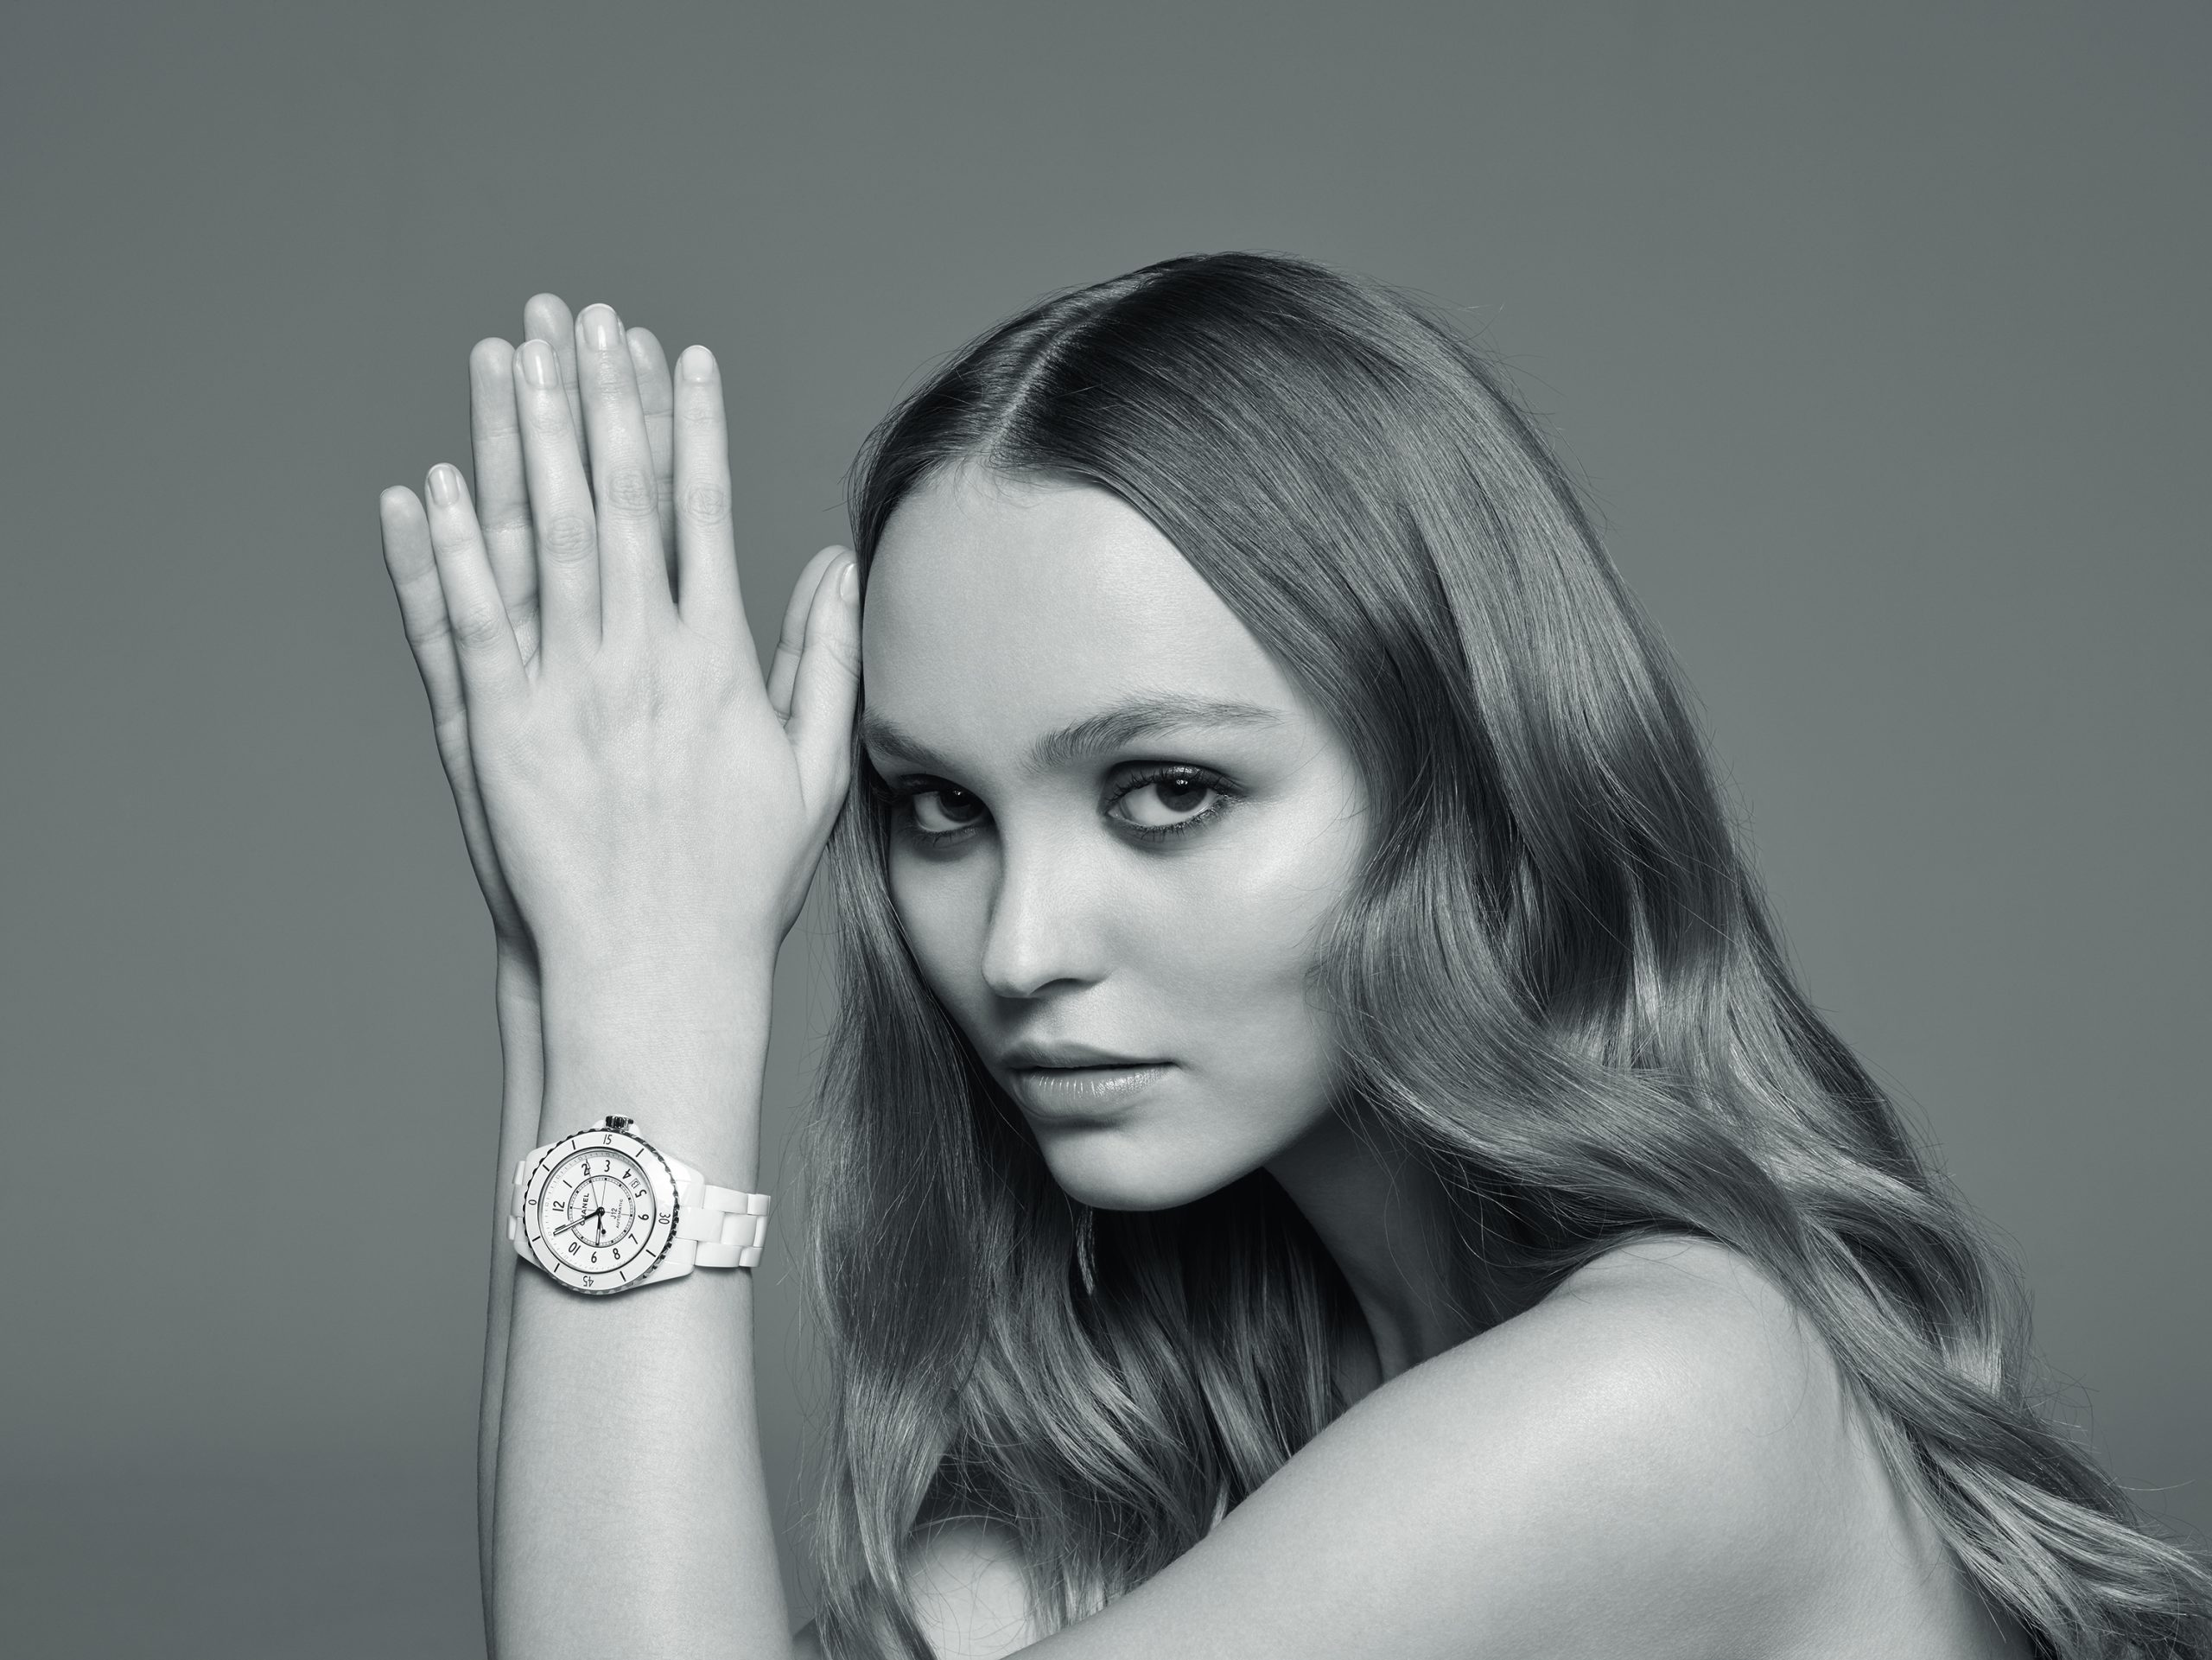 Chanel J12 Spring 2020 Ad Campaign with Lily-Rose Depp, Naomi Campbell, and Claudia Schiffer Photos